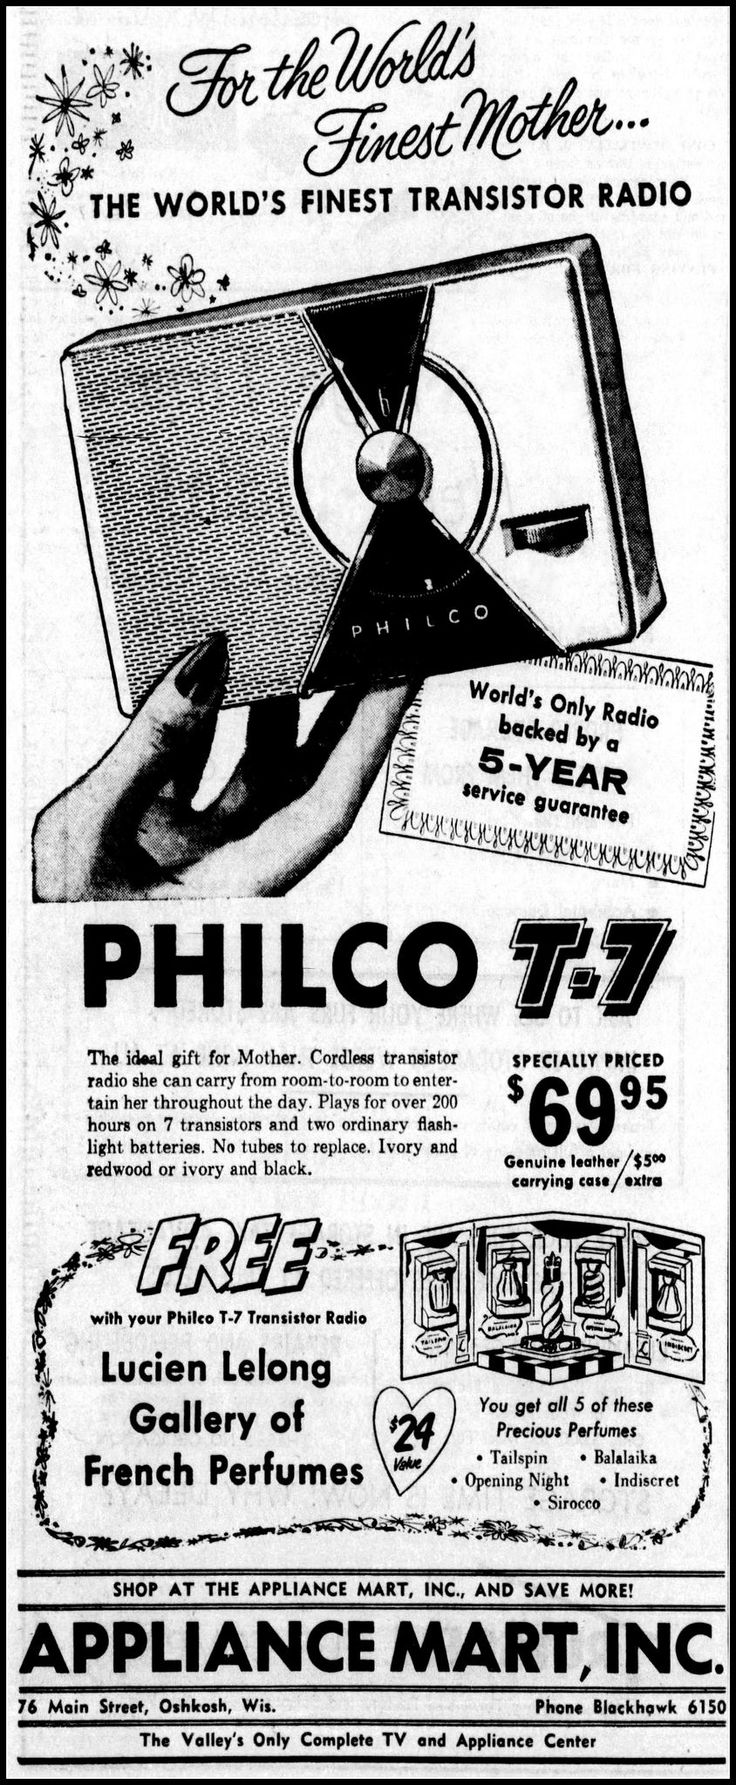 https://flic.kr/p/QHtMRs | Vintage Newspaper Advertising For The Philco T-7 Transistor Radio In The Oshkosh Wisconsin Daily Northwestern, May 10, 1957